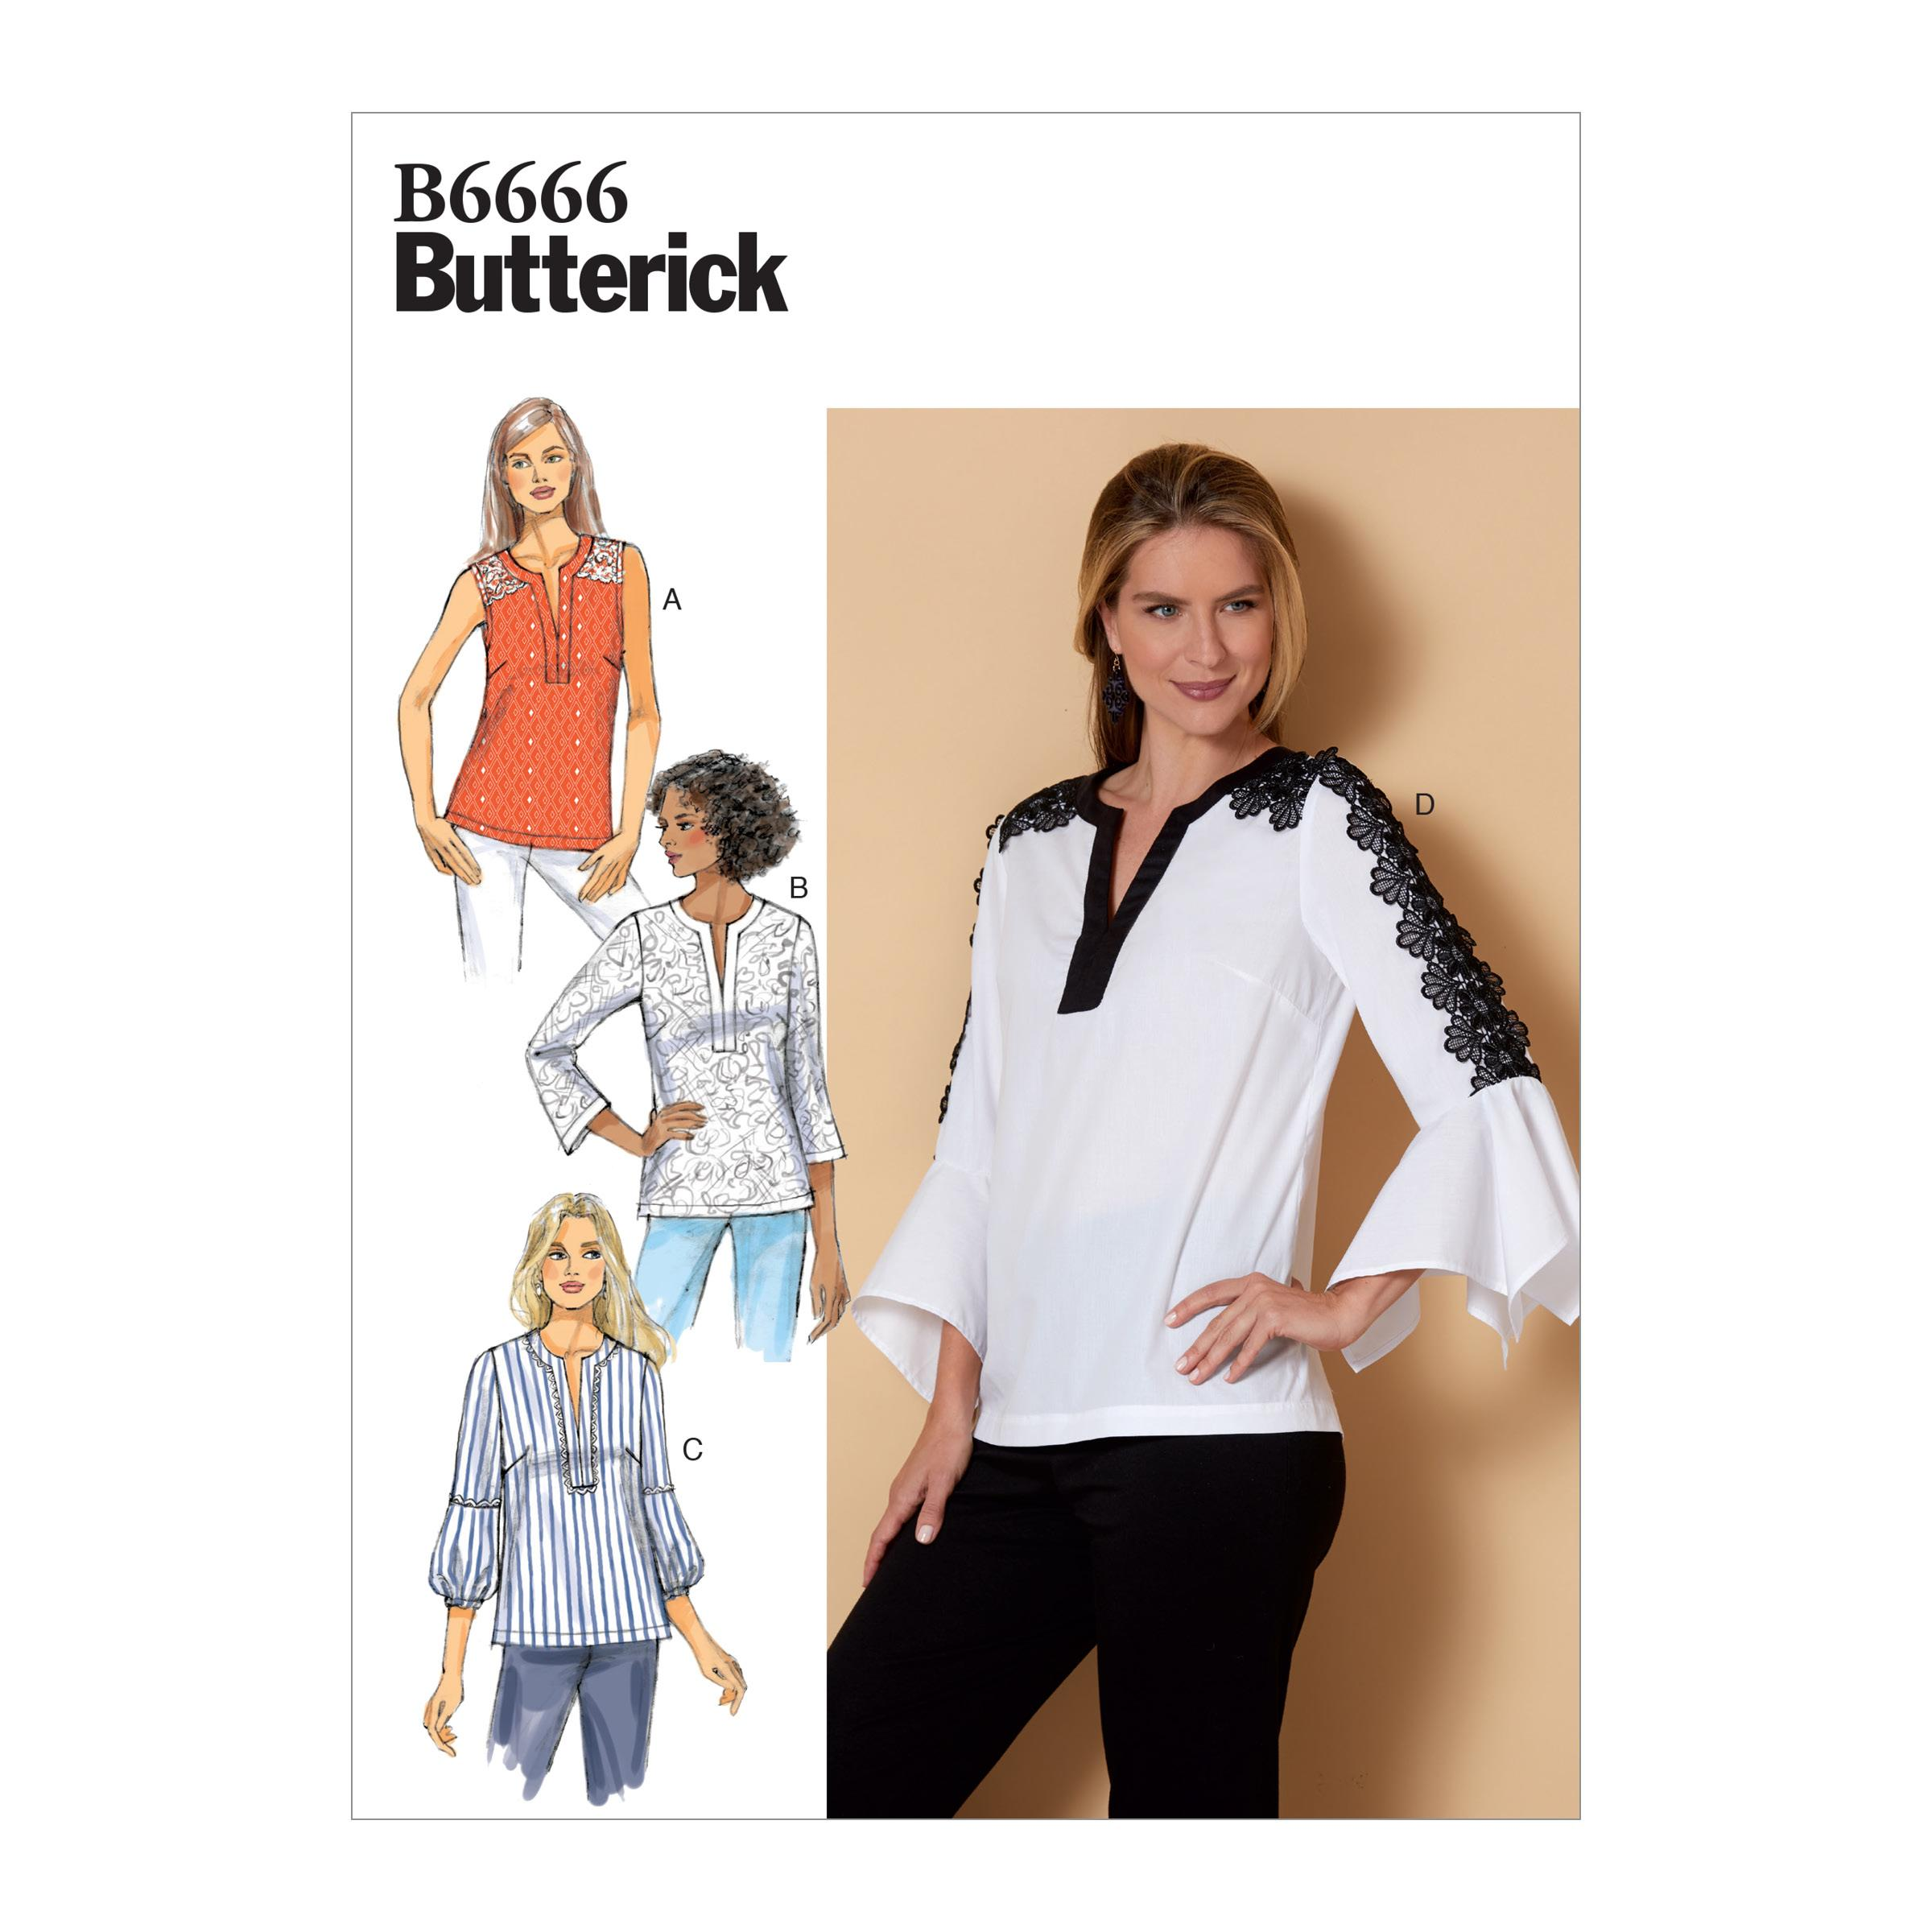 Butterick B6666 Misses' Top